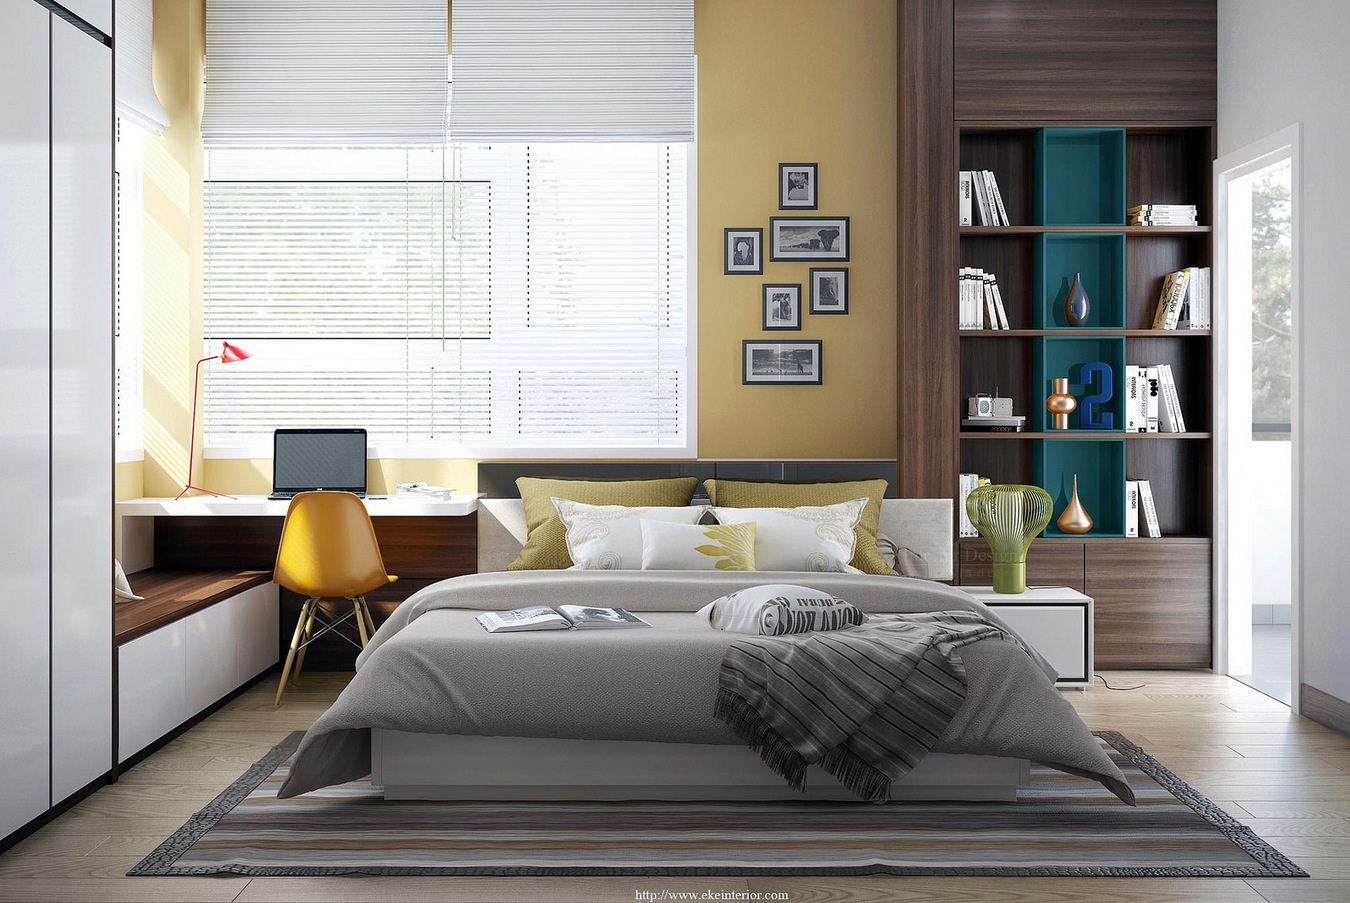 20 modern bedroom designs - Bedroom Decor